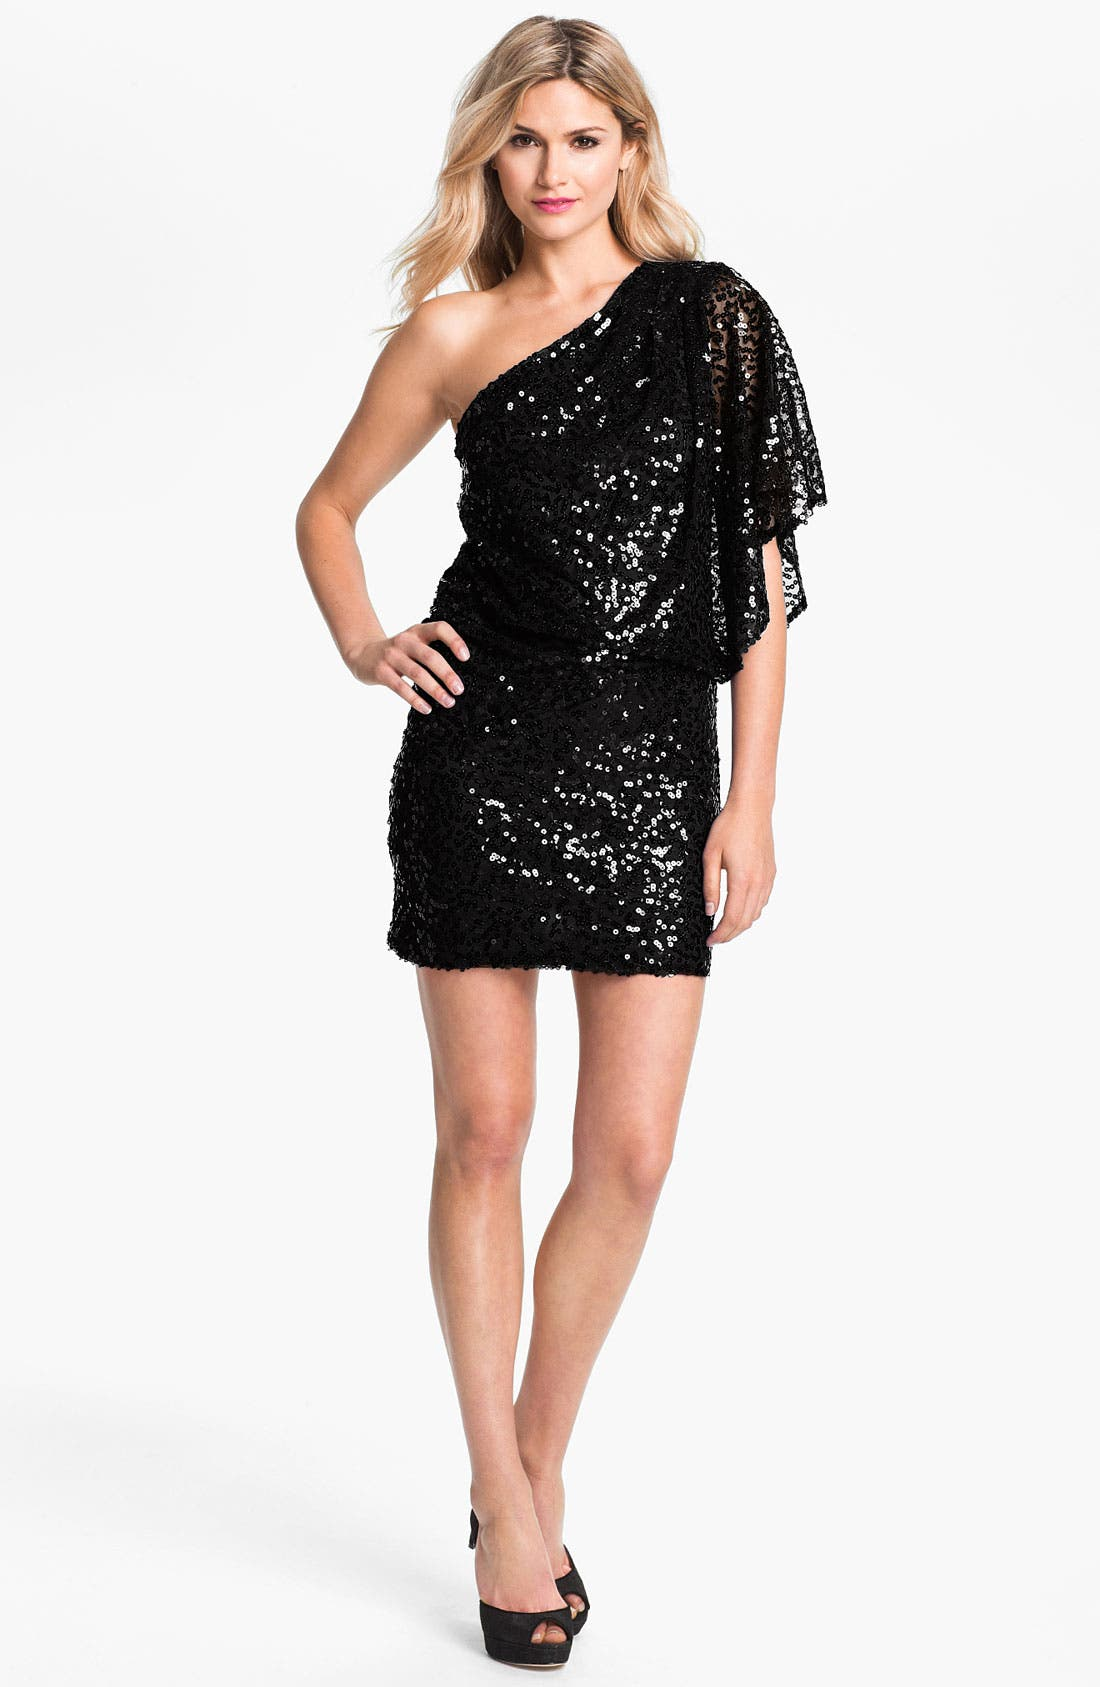 Alternate Image 1 Selected - Jessica Simpson One Sleeve Sequin Blouson Dress (Online Exclusive)